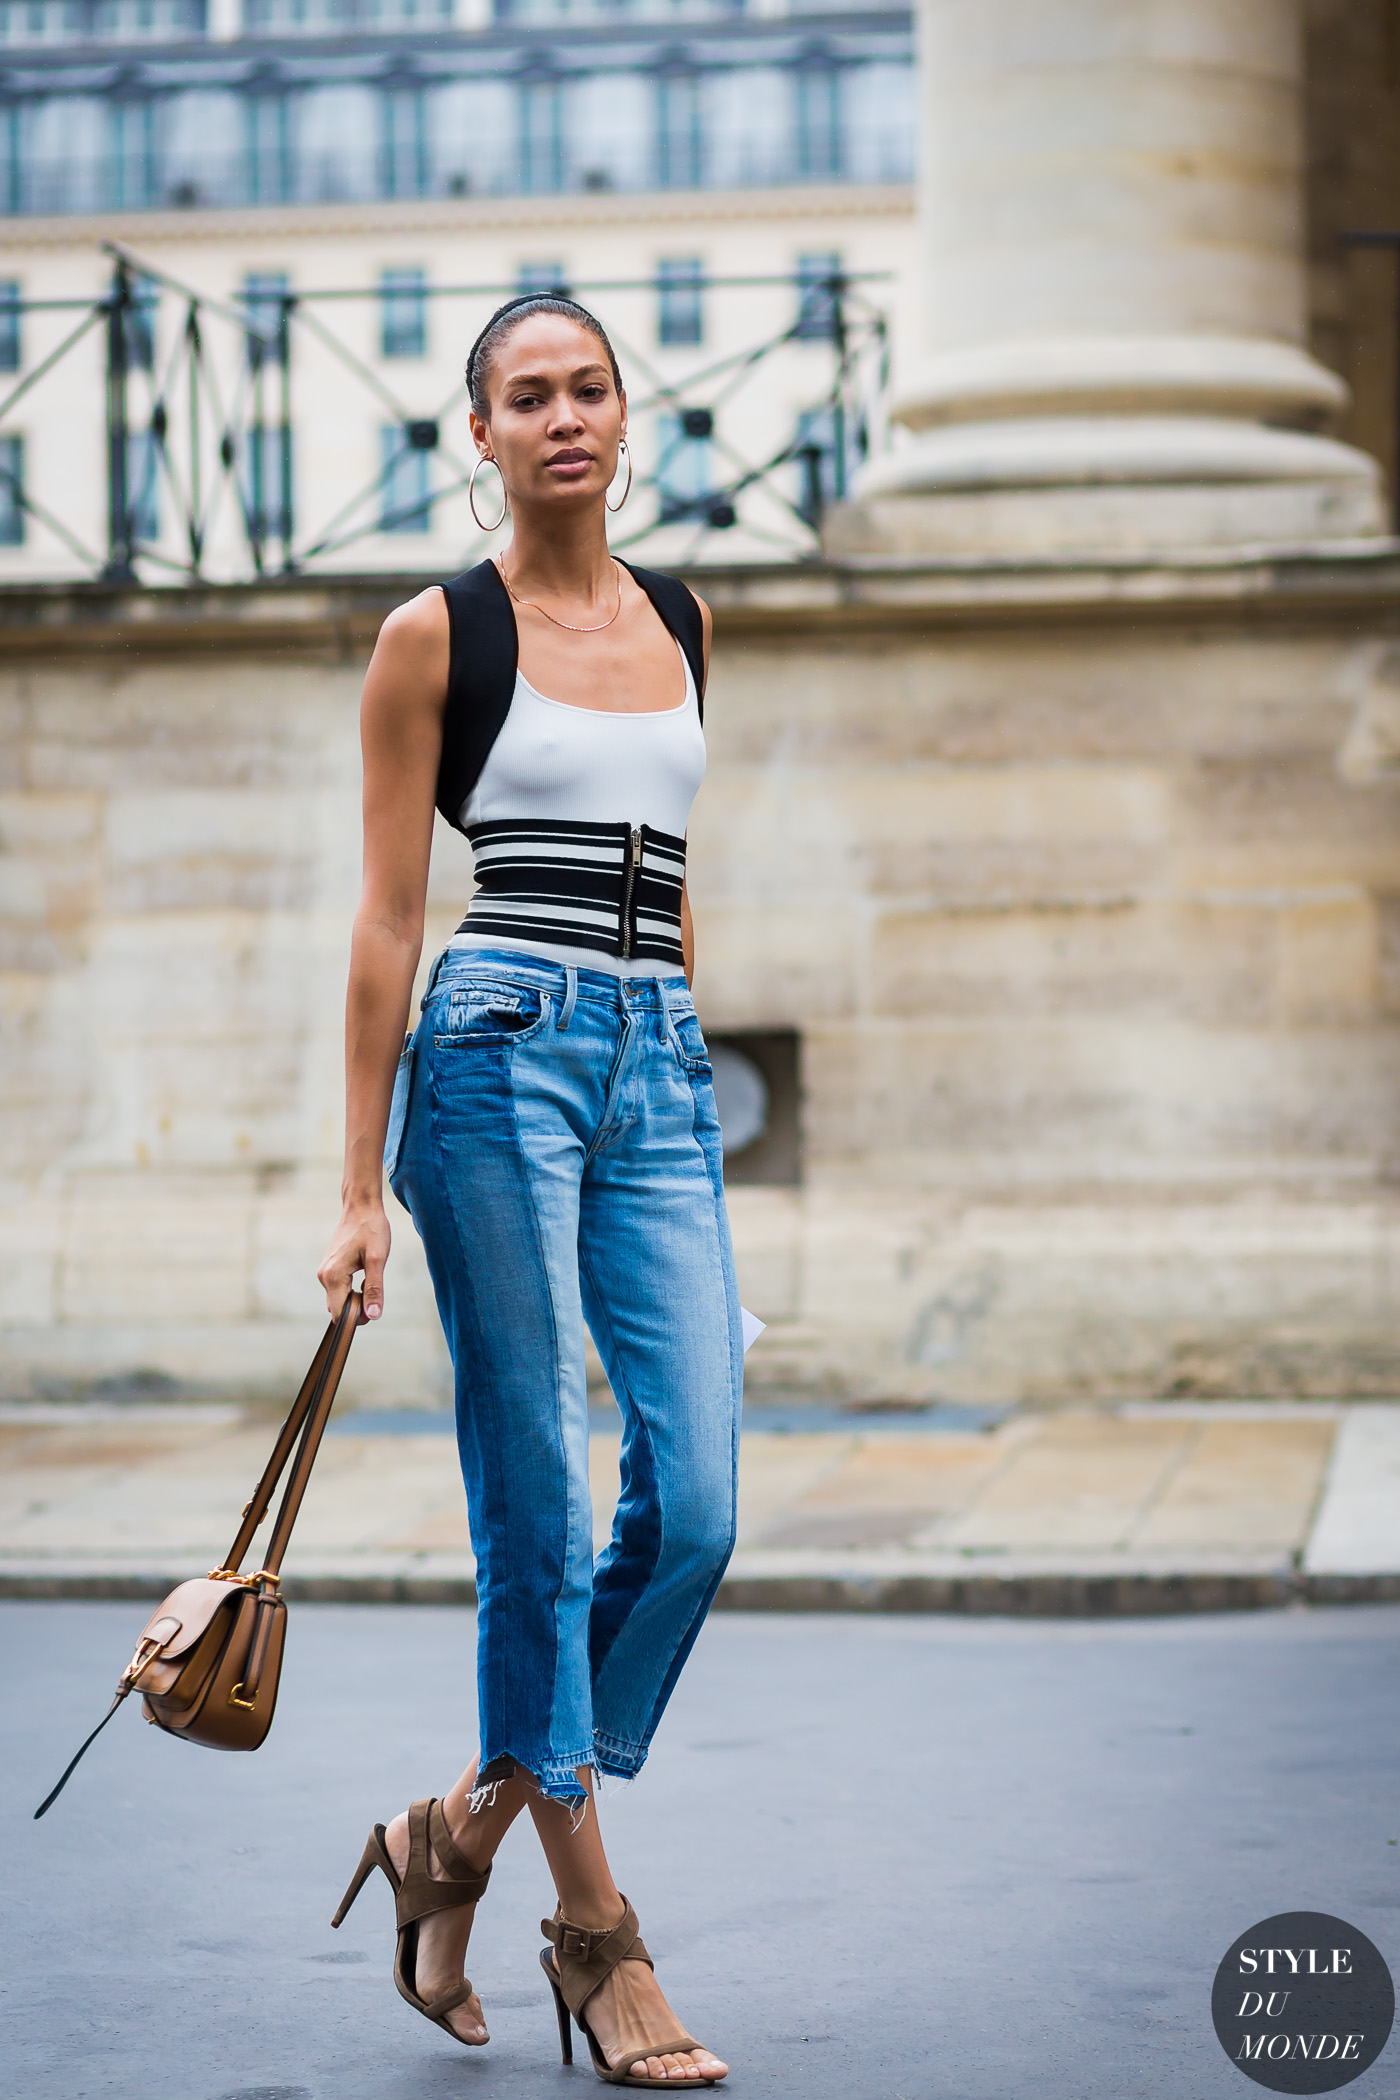 Joan Smalls Street Style Street Fashion Streetsnaps by STYLEDUMONDE Street Style Fashion Photography